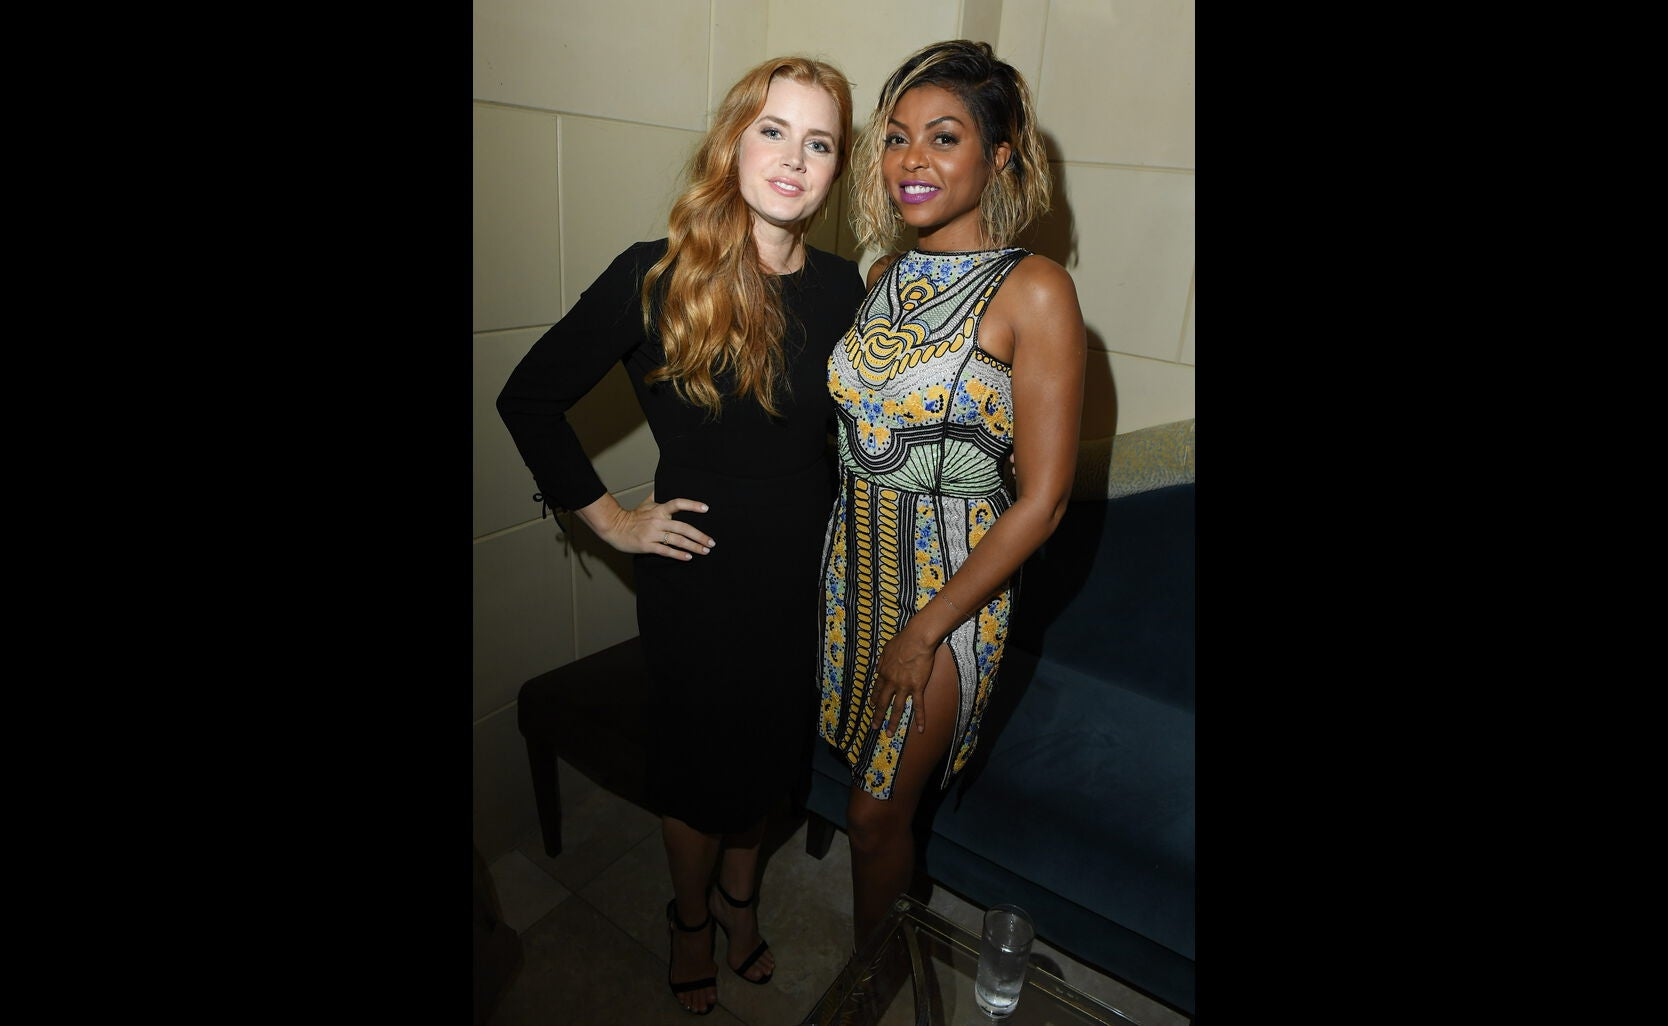 Golden Globe winners Amy Adams and Taraji P. Henson at the HFPA/InStyle party